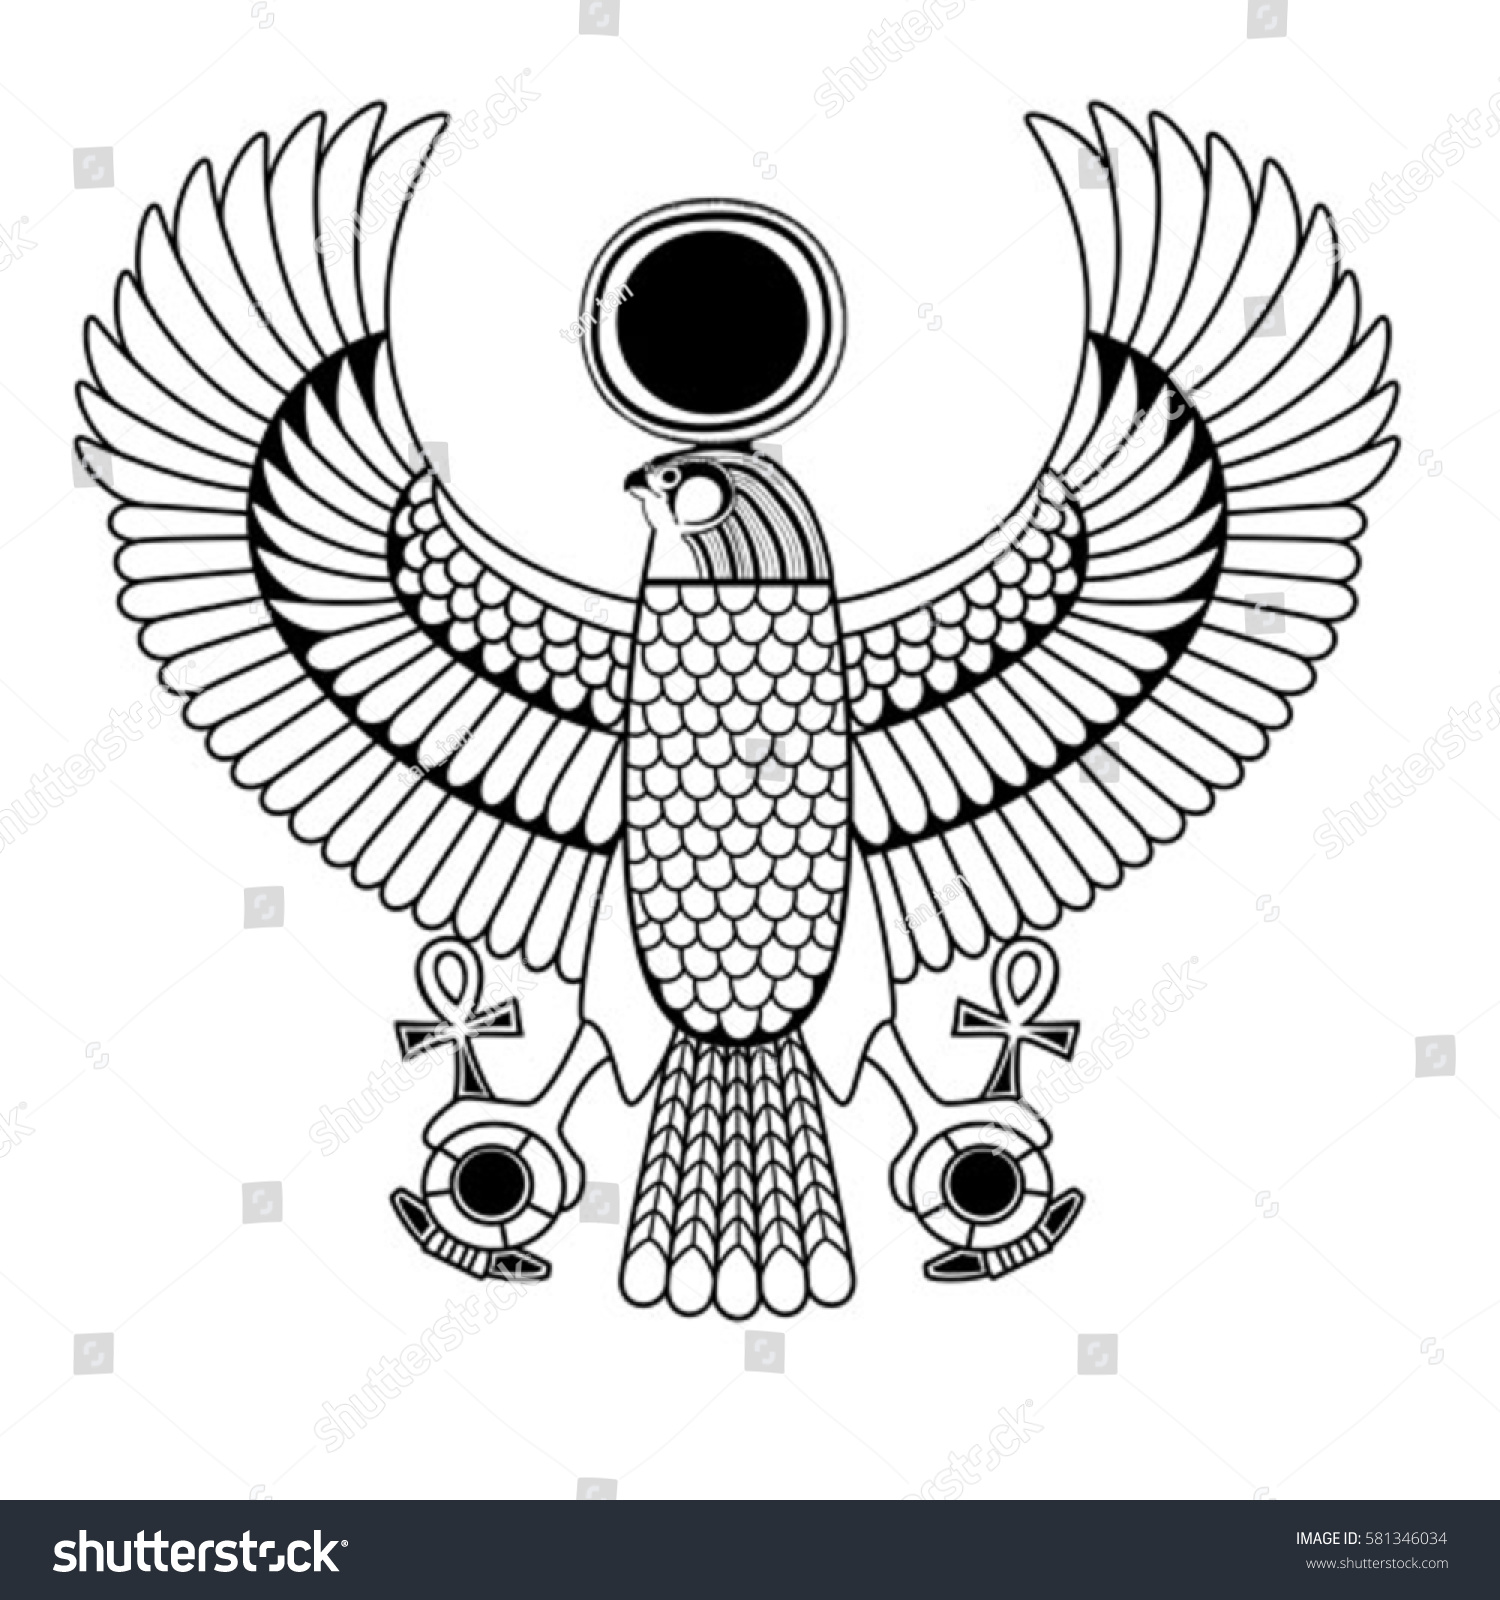 Egyptian Ancient Symbol Isolated Figure Ancient Stock Vector